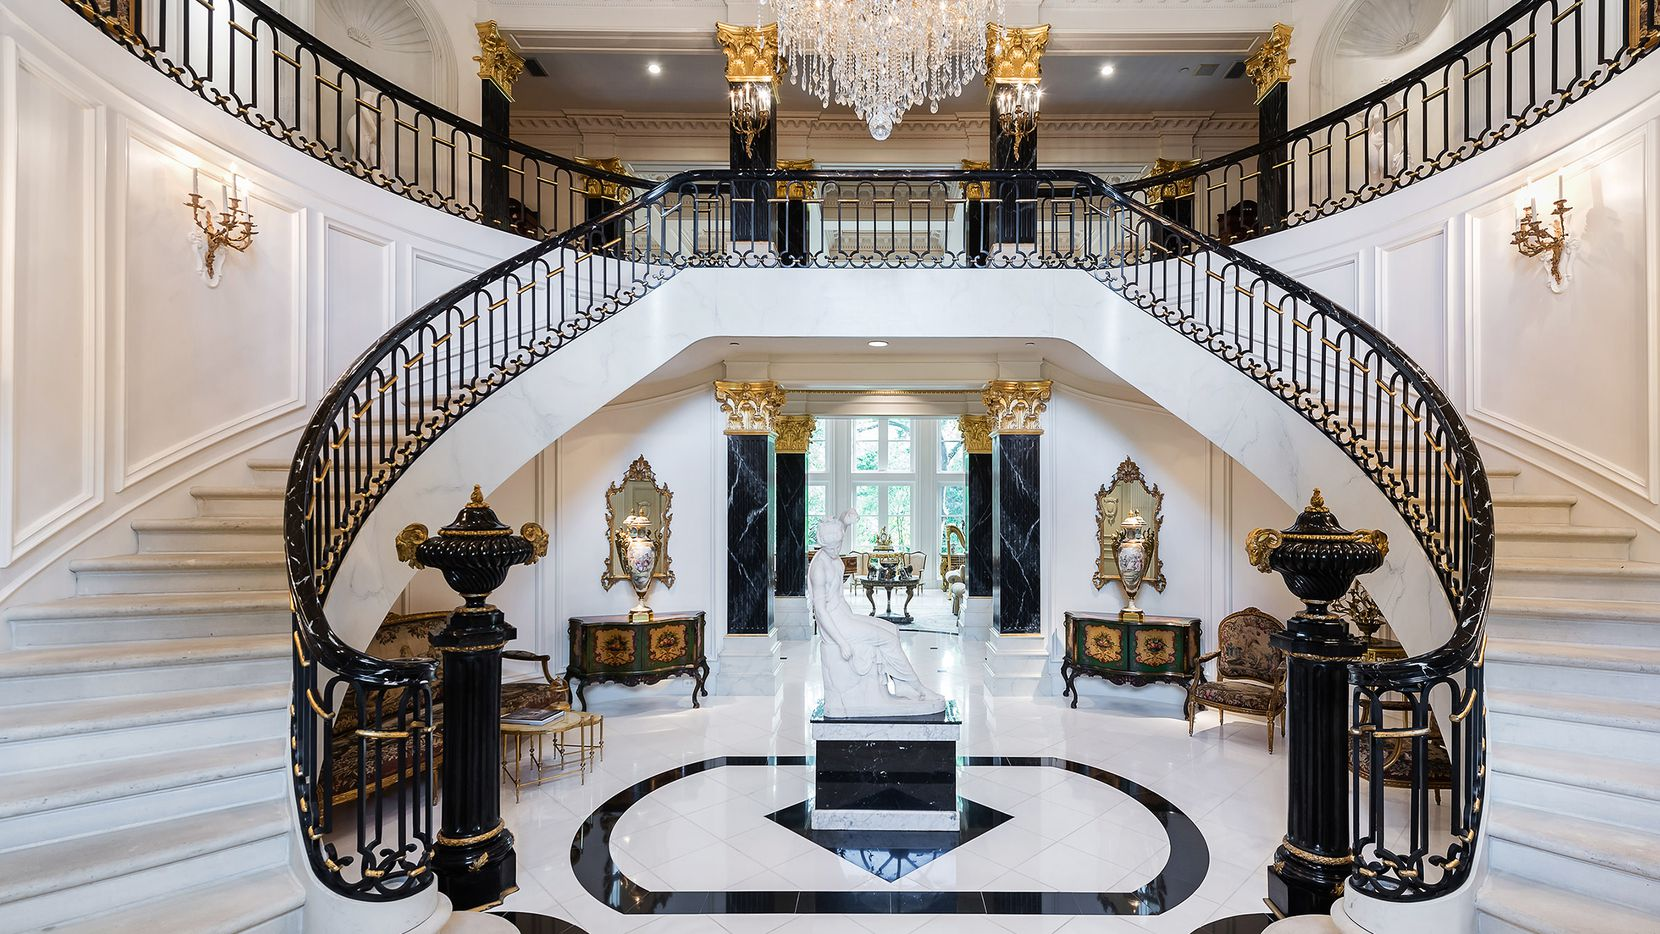 The 20,000-square-foot estate at 4444 Valley Ridge Road in Preston Hollow offers numerous indoor and outdoor amenities.